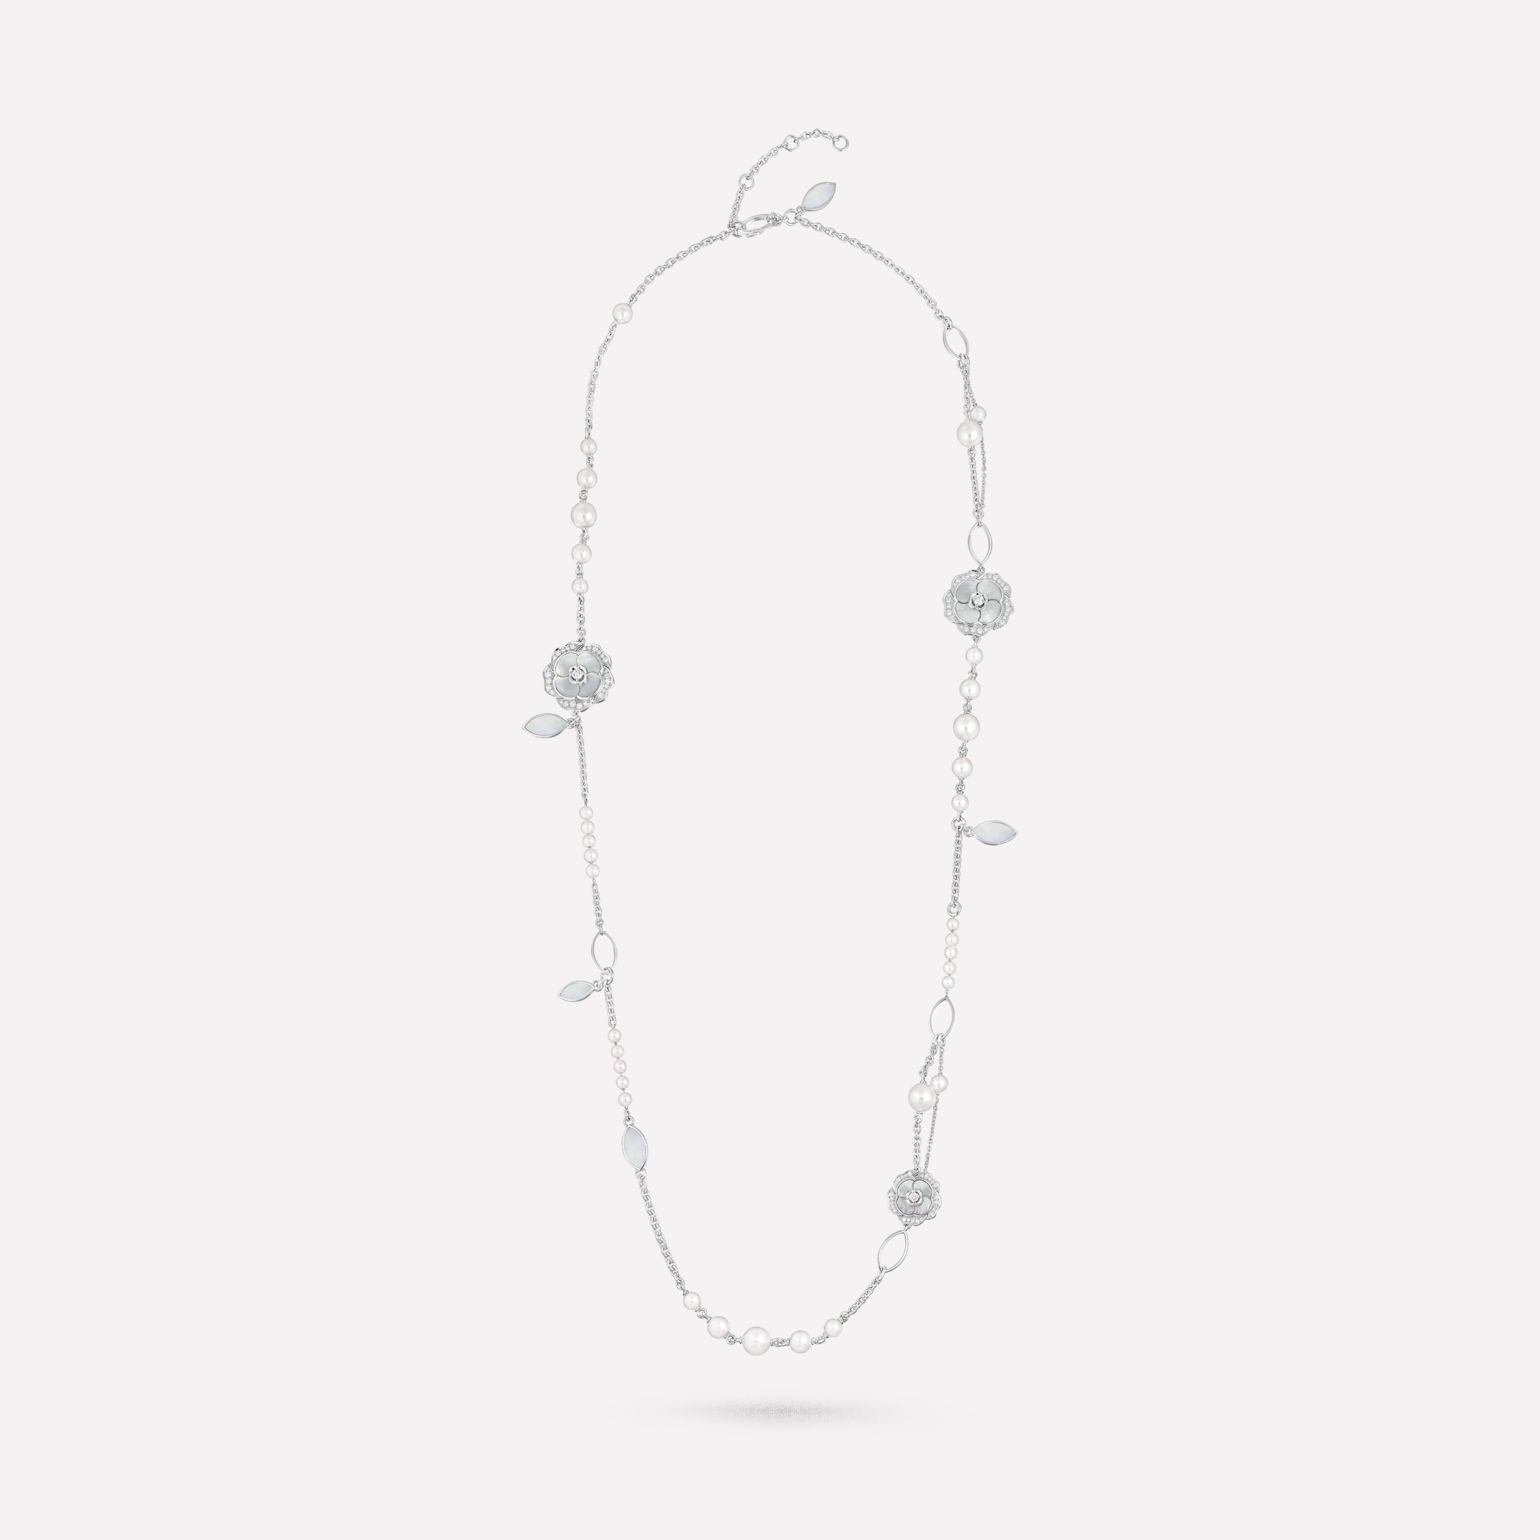 Camélia Necklace Pétales de Camélia sautoir in 18K white gold, diamonds, cultured pearls and mother-of-pearl